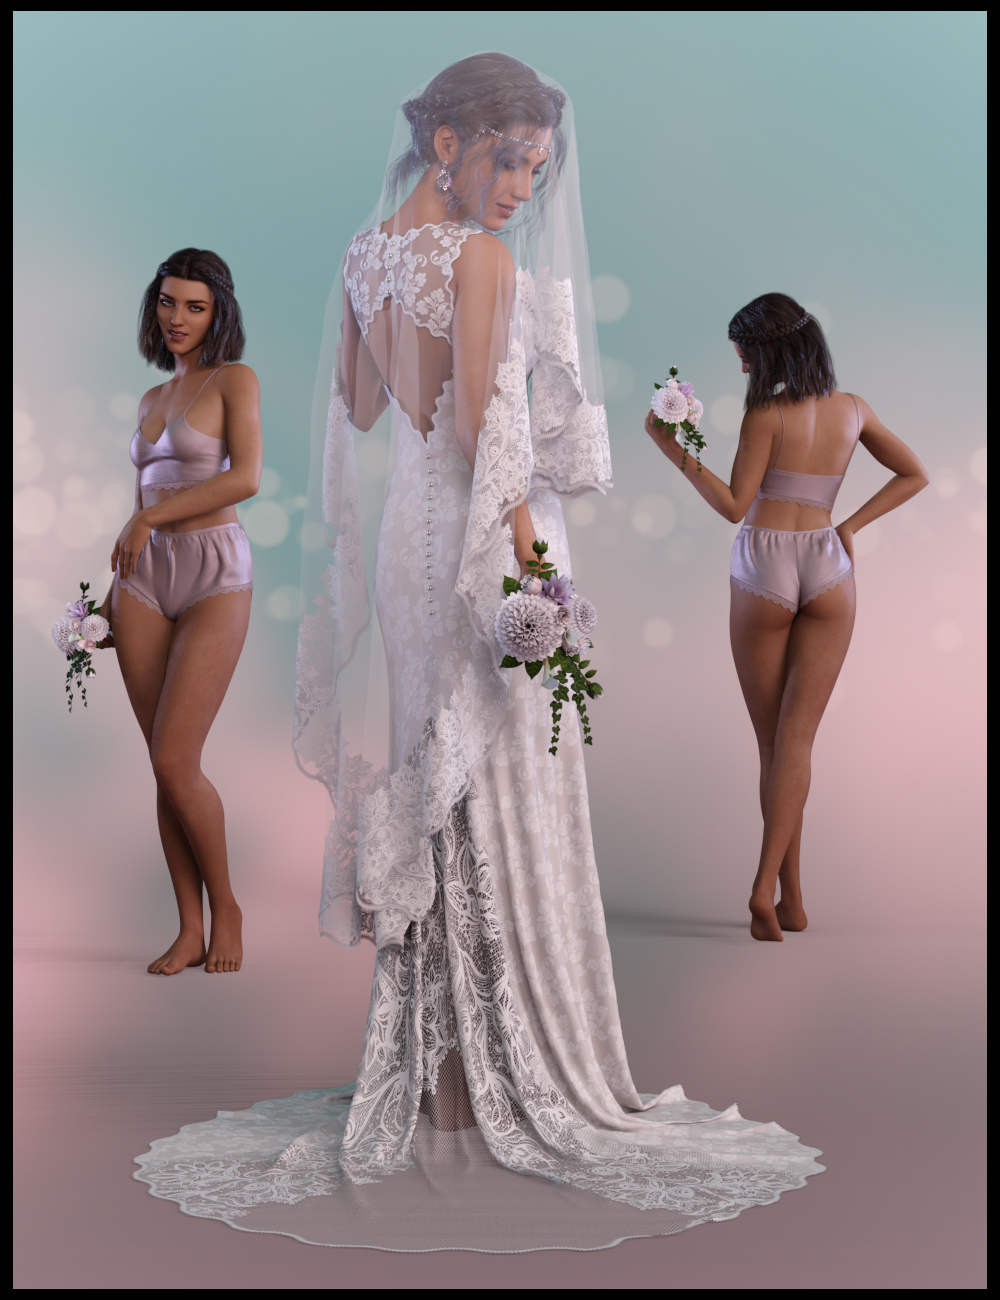 White Wedding dForce Ready Poses for Genesis 8 Female by: lunchladyPandyGirl, 3D Models by Daz 3D